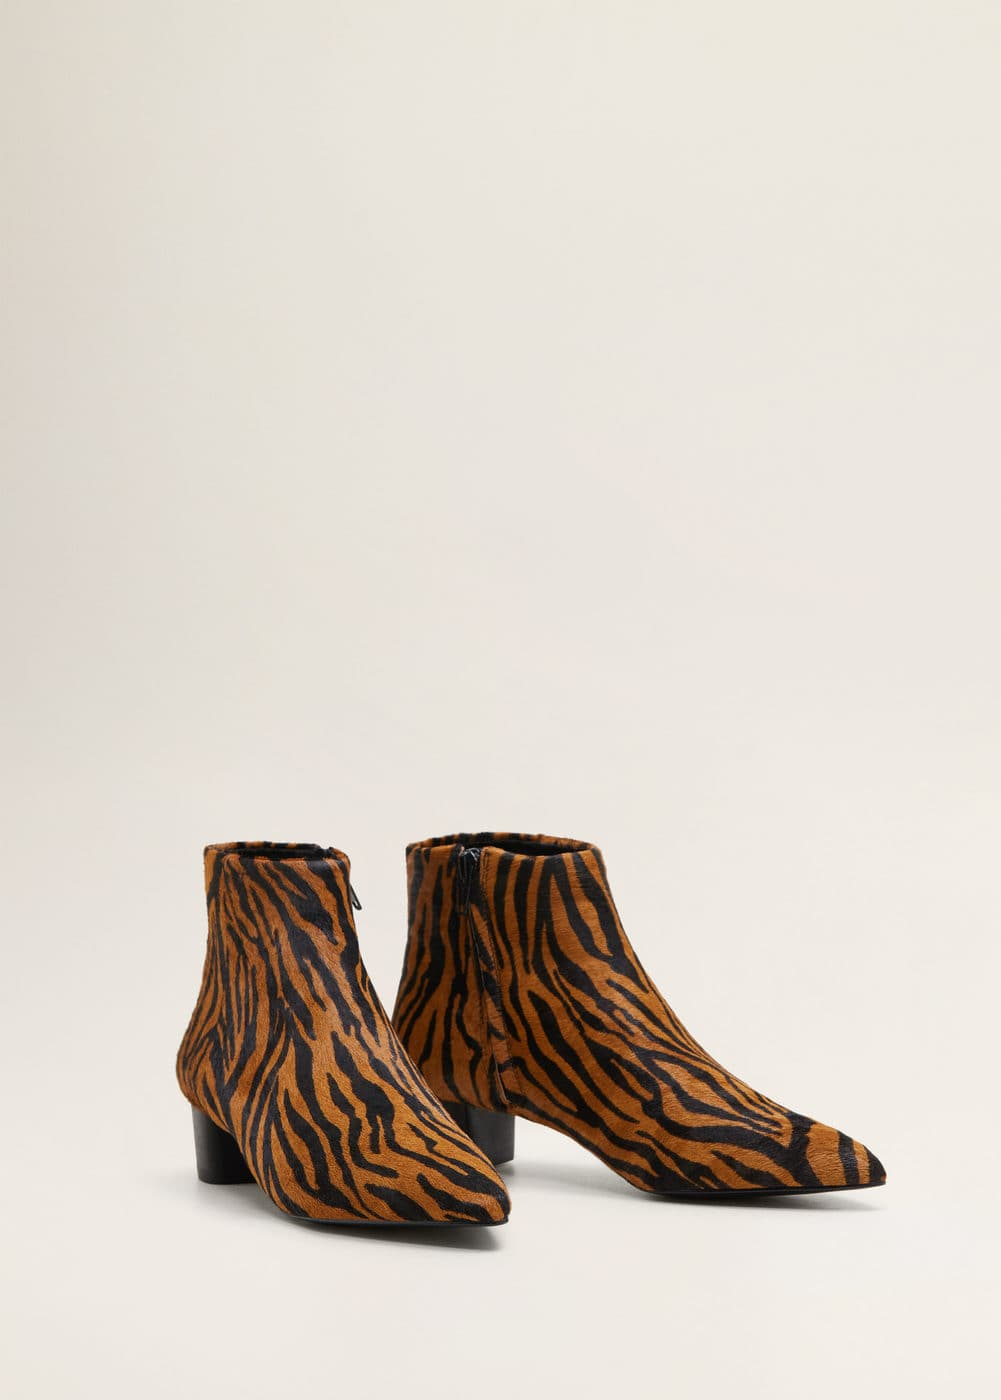 uk availability d412f 7807c Animal print leather ankle boots